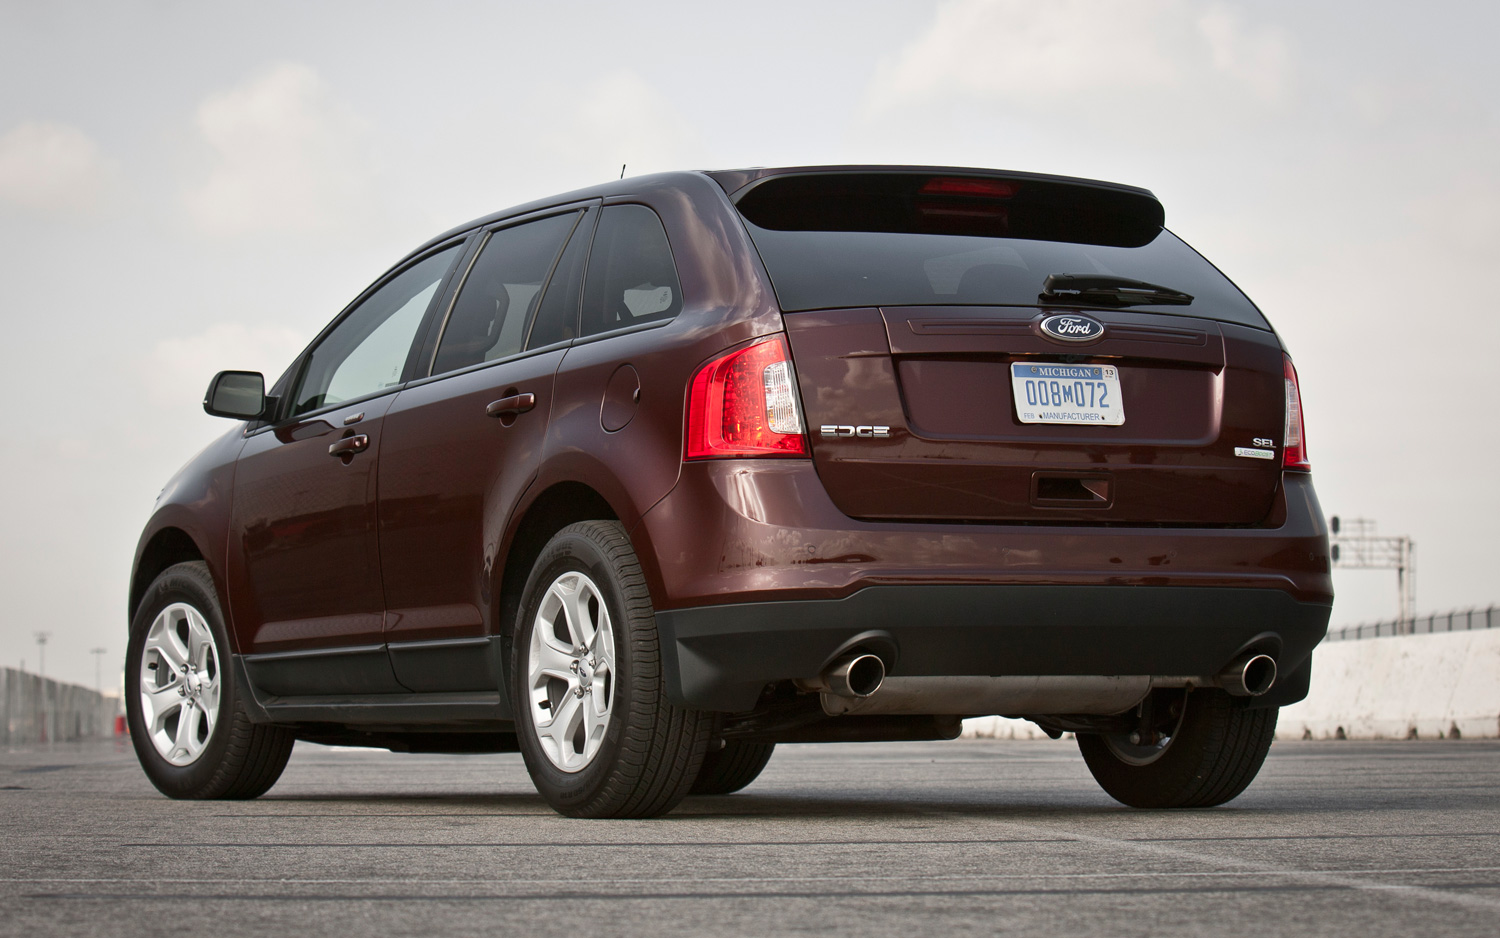 2012 ford edge image 20